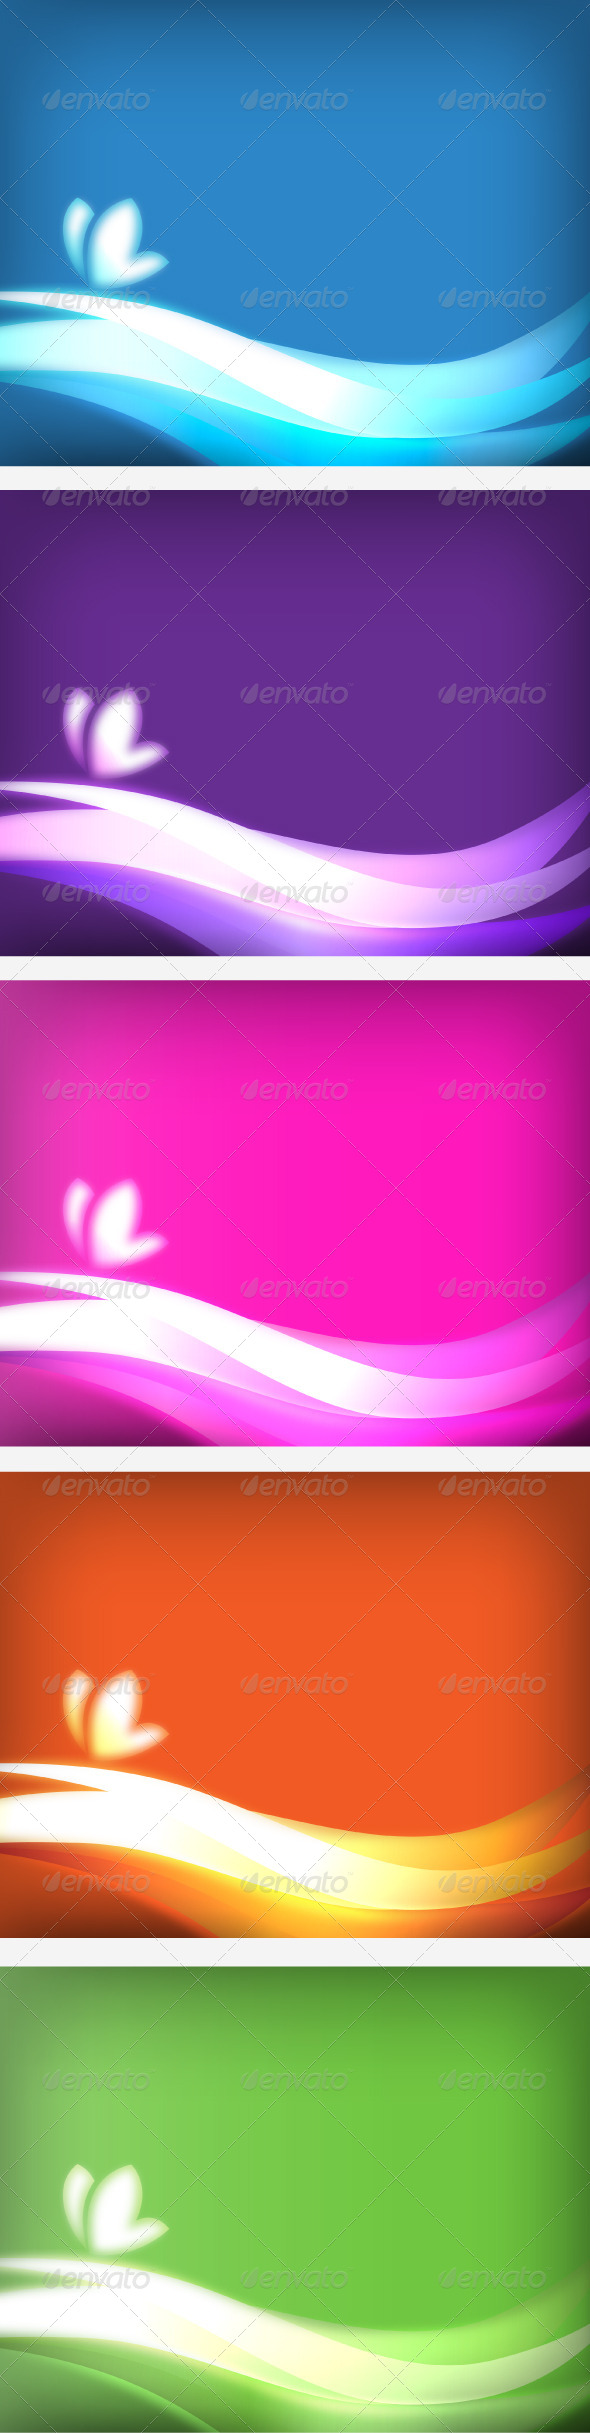 GraphicRiver Abstract Vector Waves 5576414